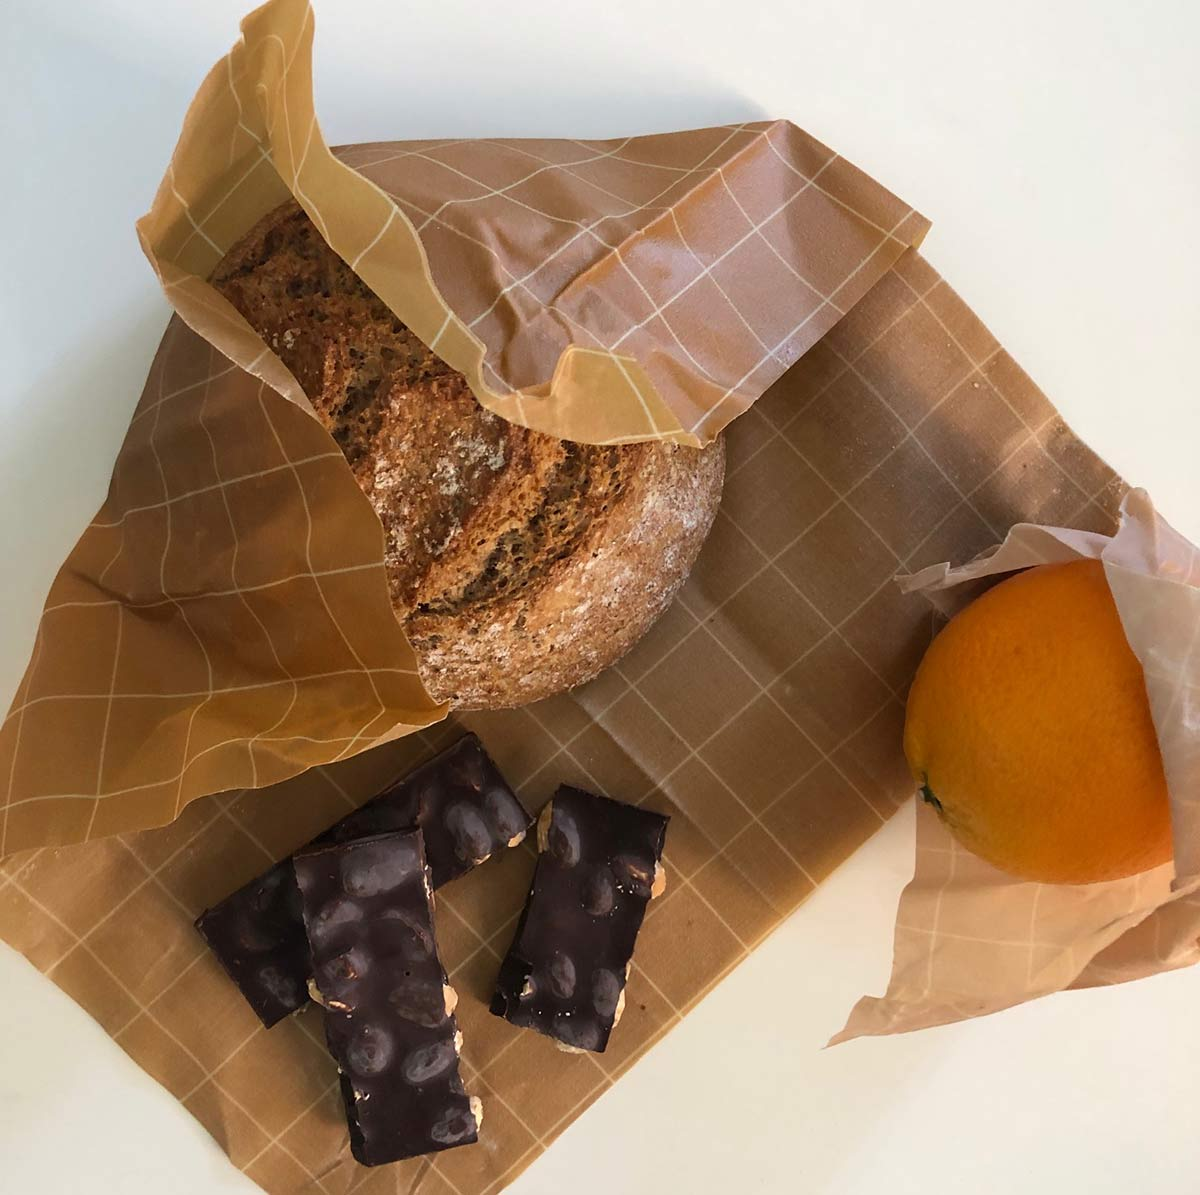 About snacks and their wrapping, Minimalittle and Haps Nordic